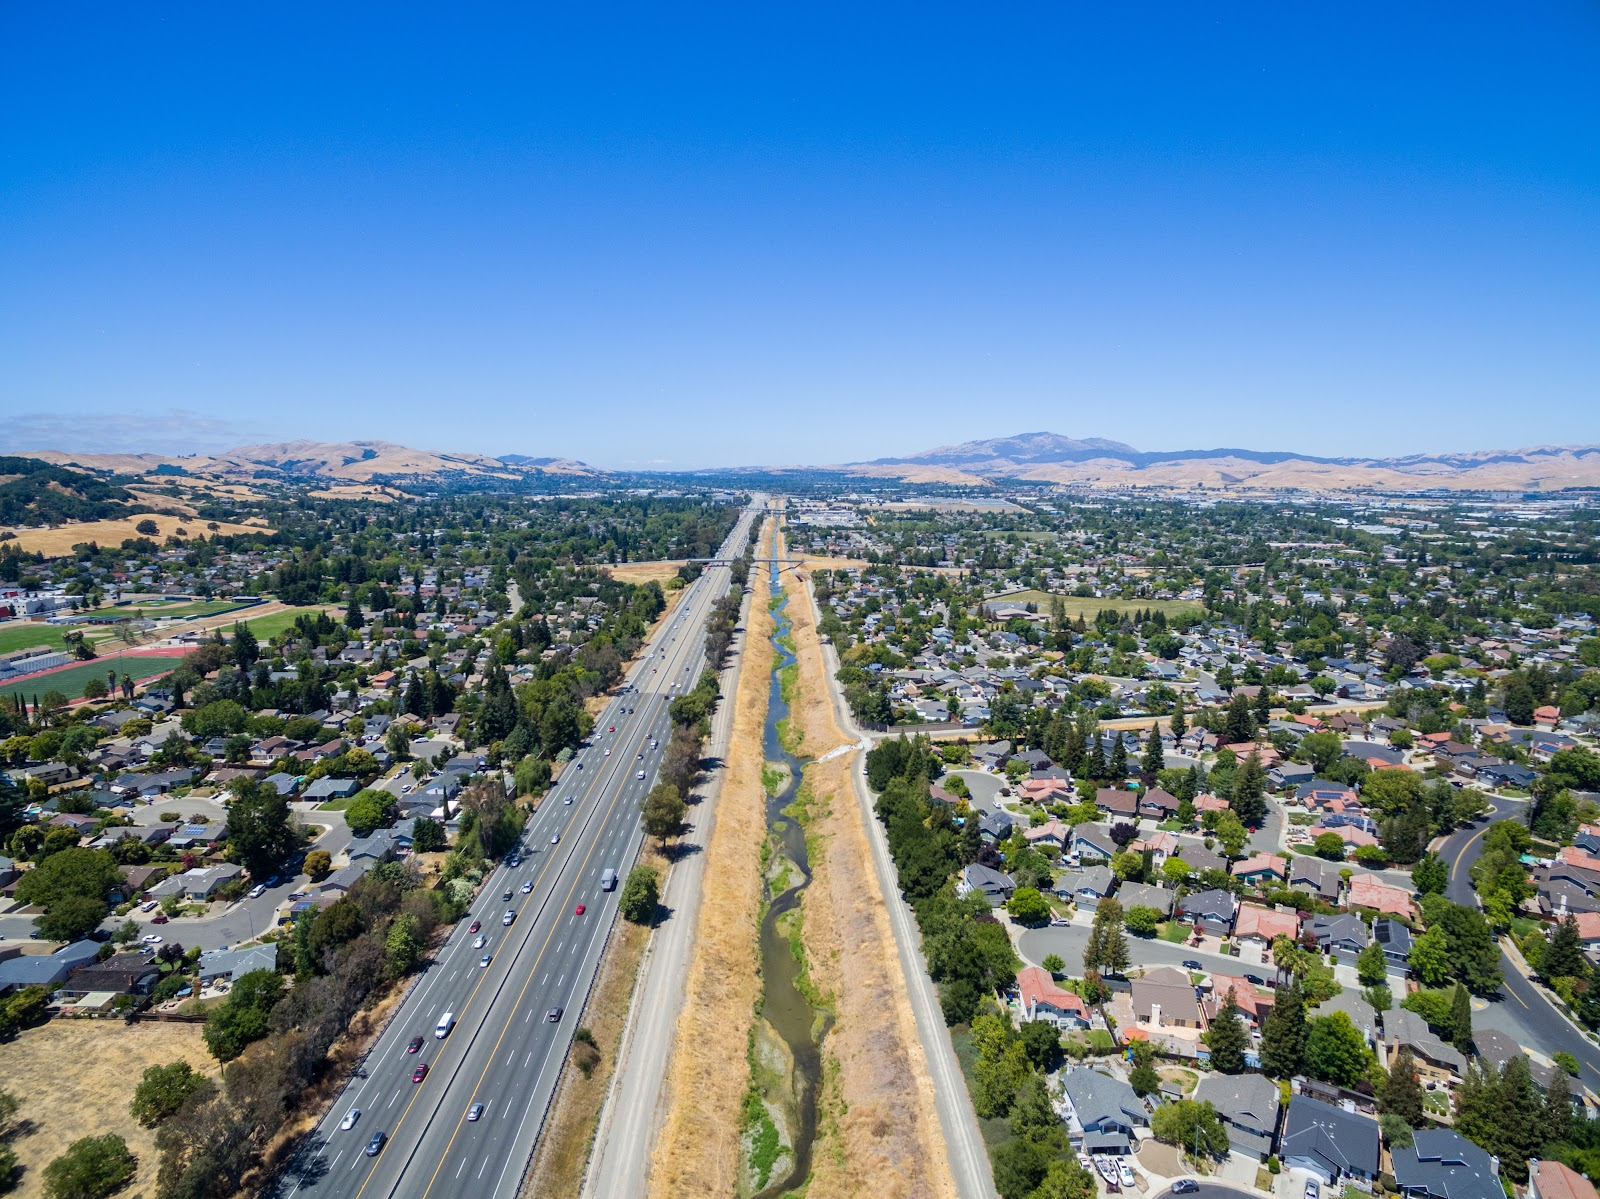 Naturetastic Blog: Del Prado Park (Aerial Photography